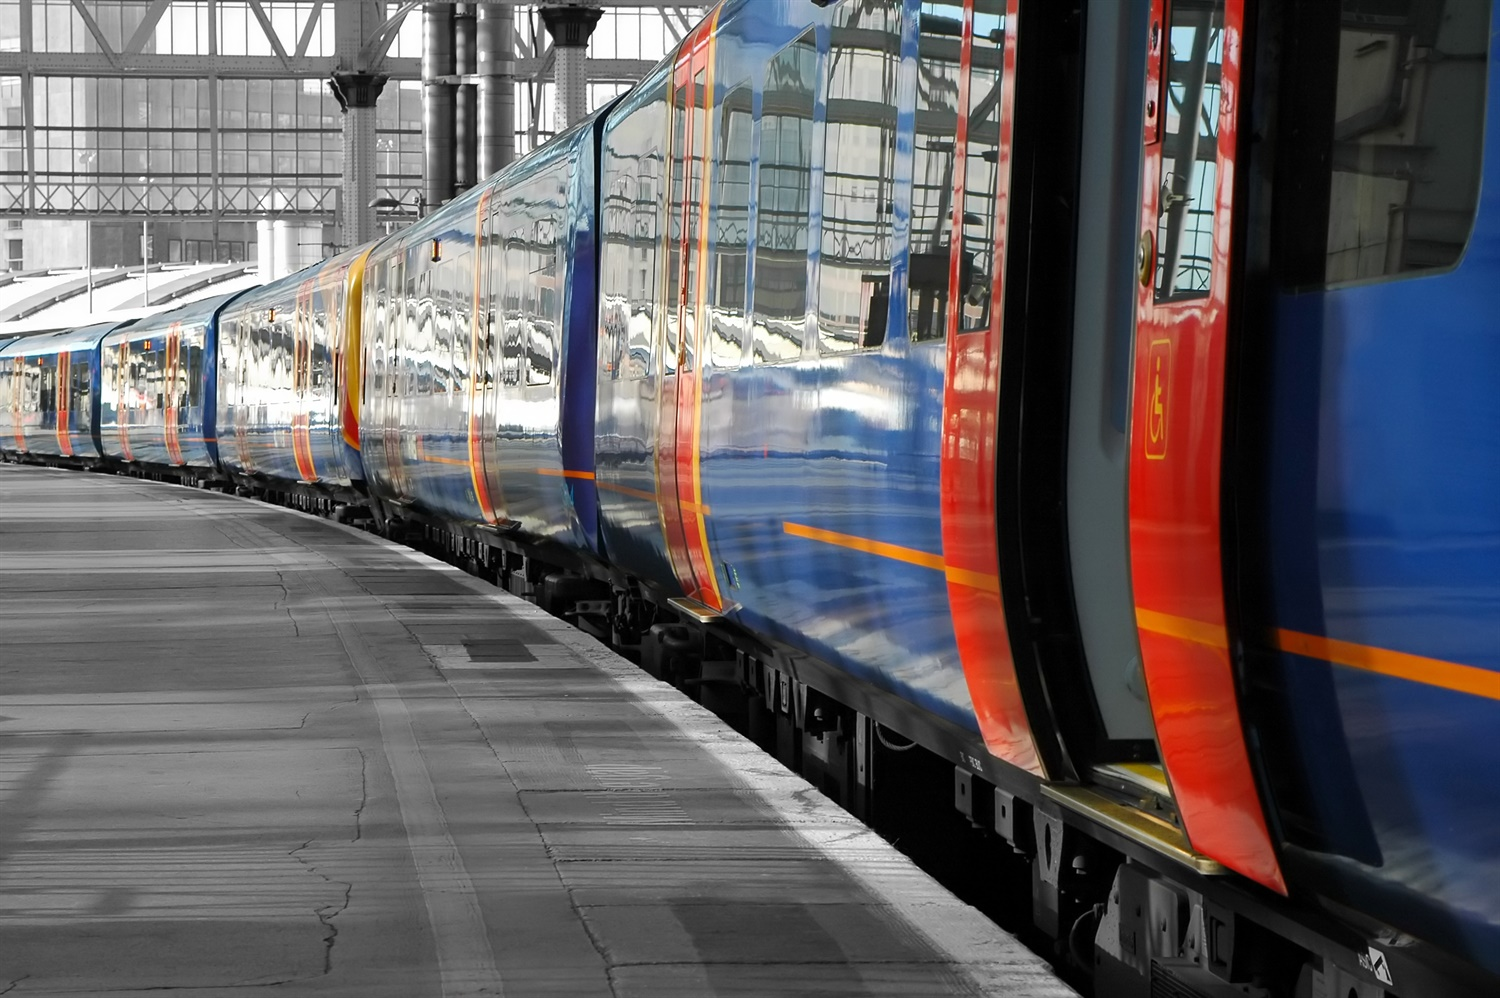 Network Rail: Committed to keeping Britain moving